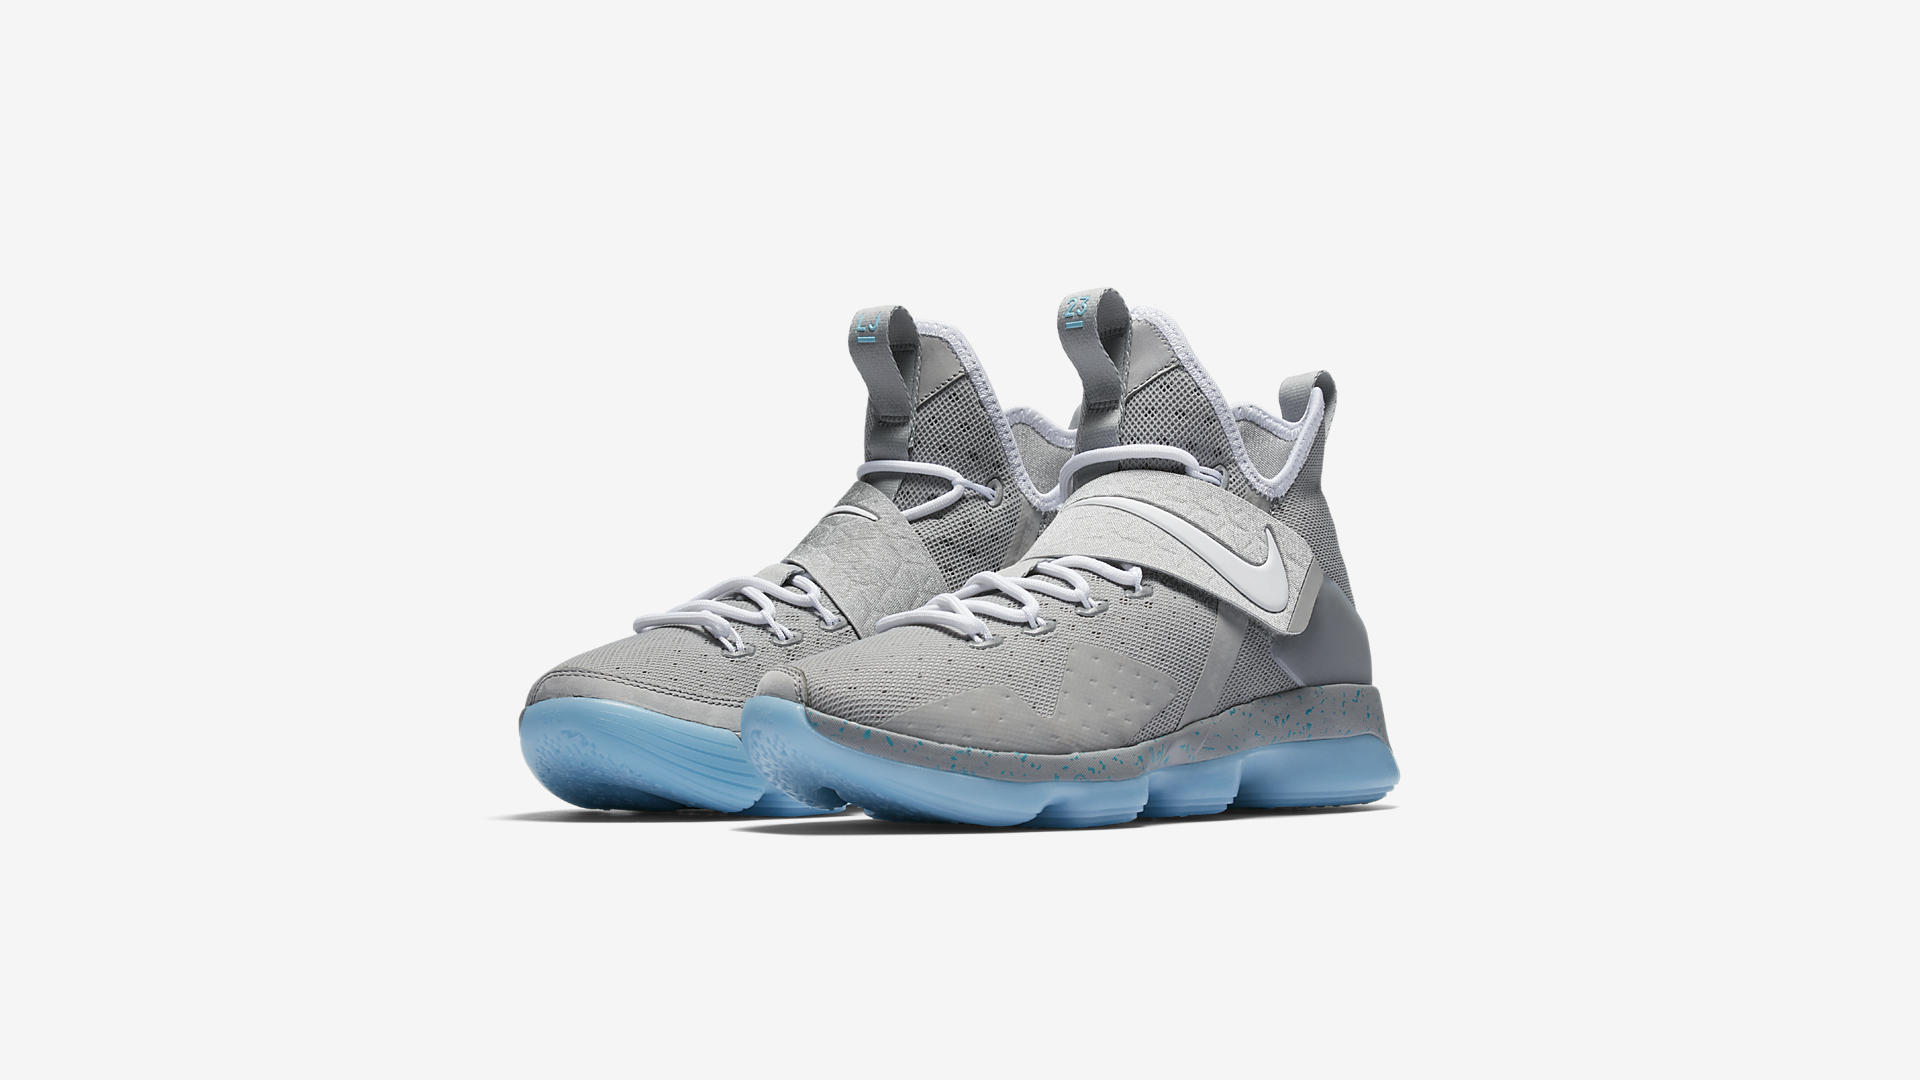 b2138524d78d LeBron 14 Archives - WearTesters